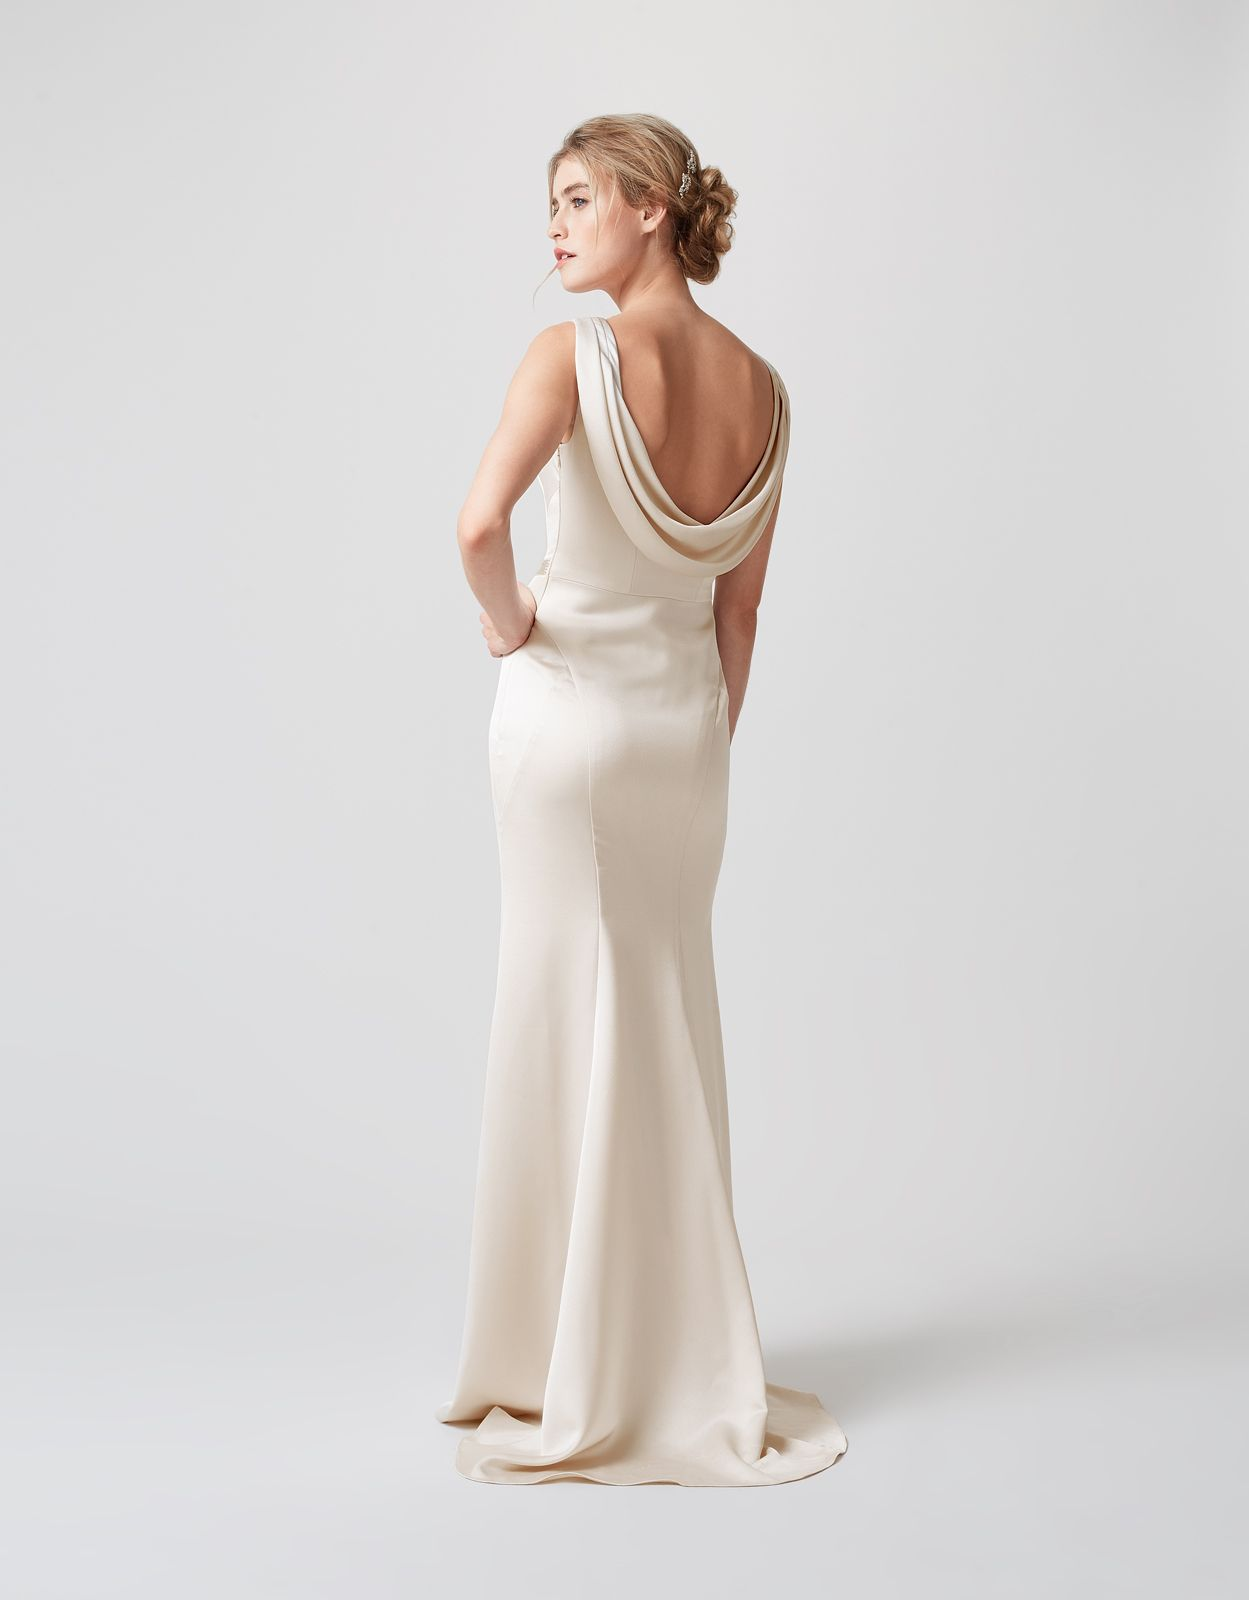 Good Morning Beautiful! A Monsoon Bridal Gown For A Summer Speakeasy ...